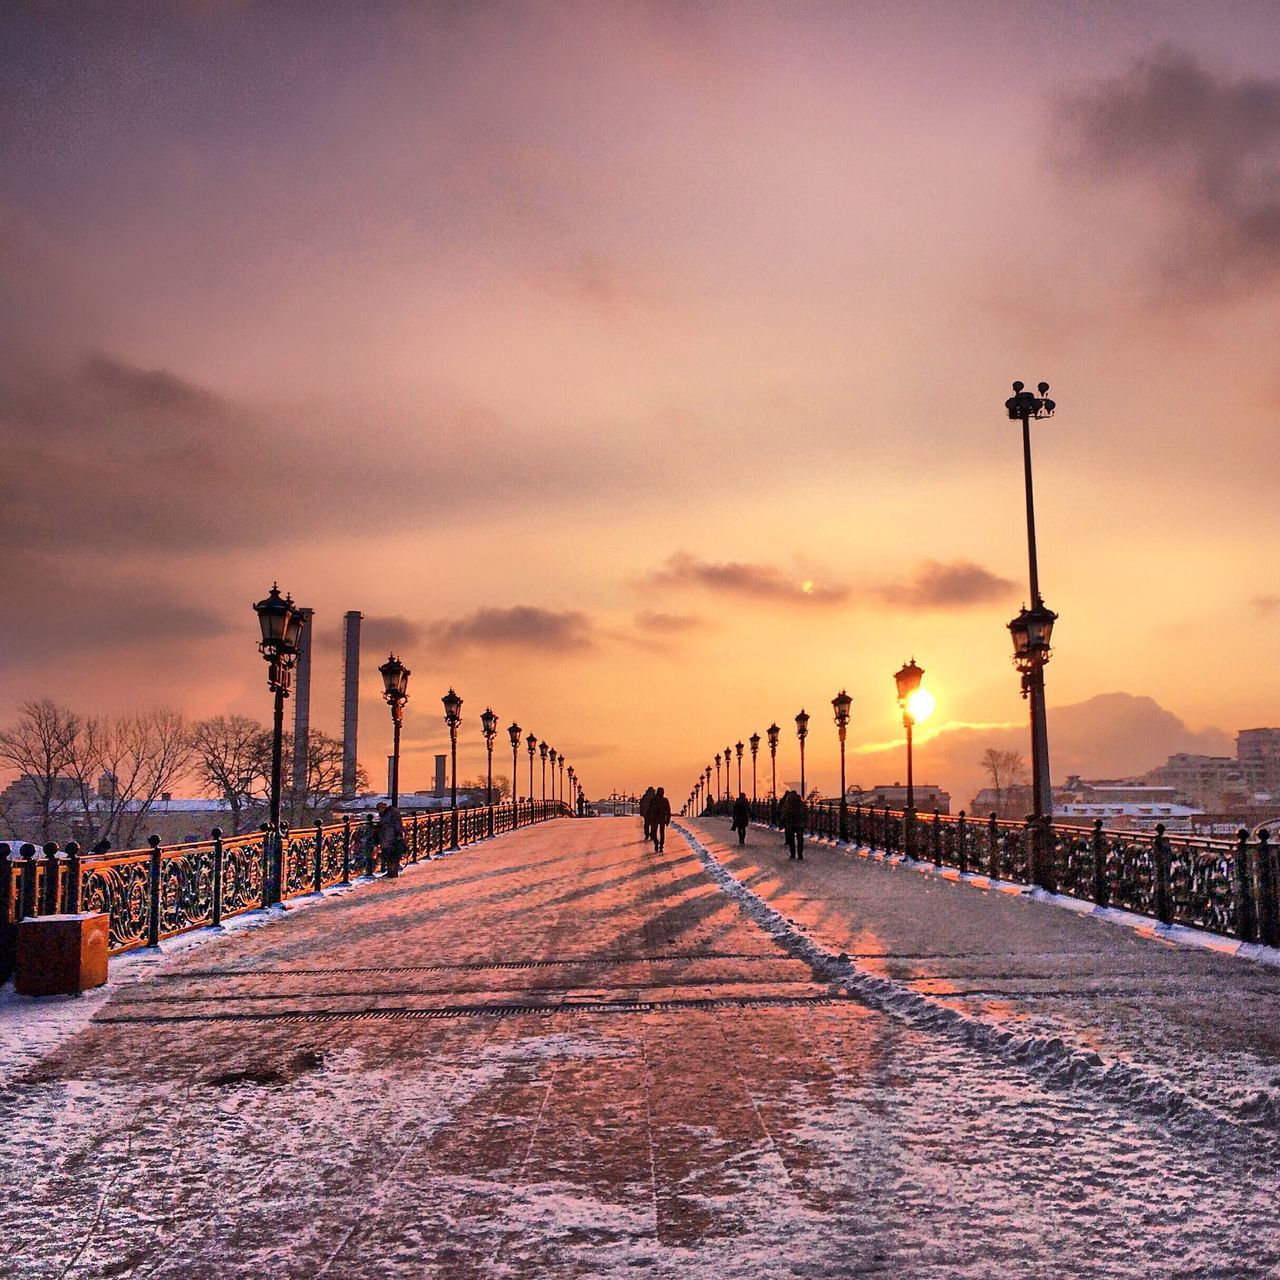 EyeEm Nature Lover Eyem Nature Lovers  Nature_collection Taking Photos Snow ❄ Winter Architecture Streetphotography Street Photography City Moscow Hello World